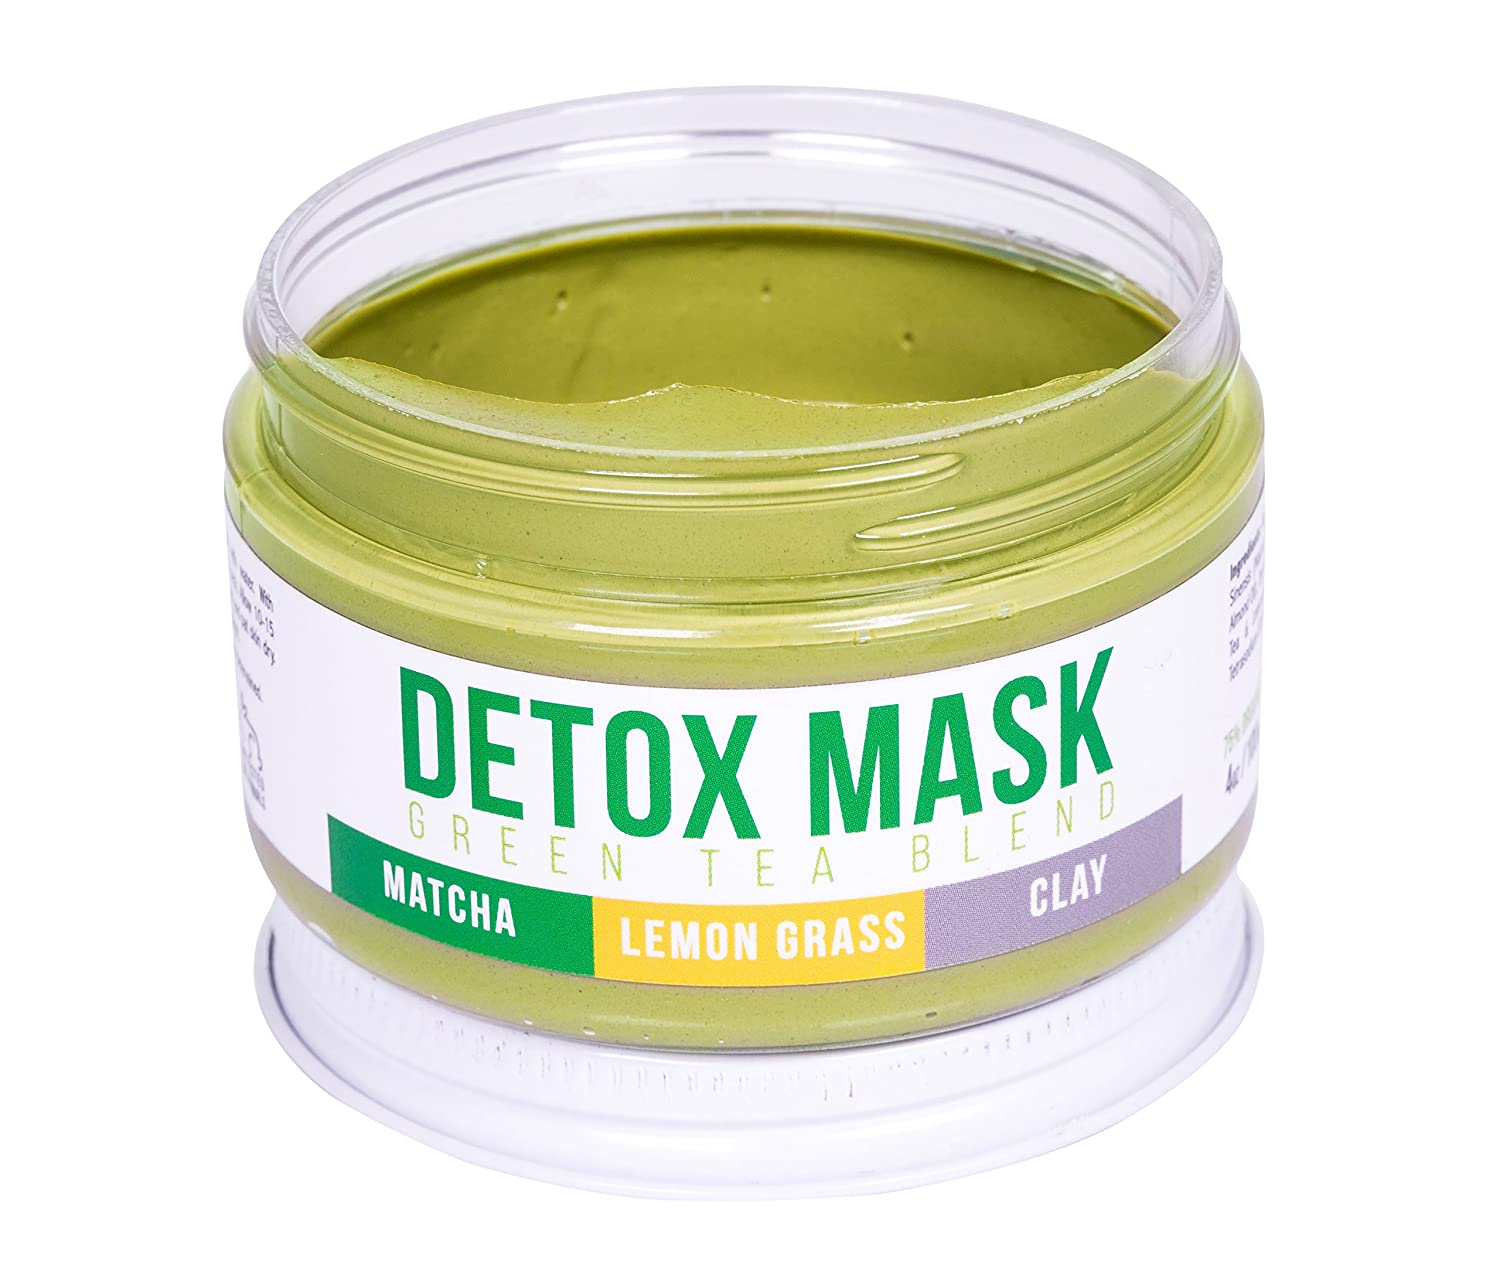 GREEN TEA DETOX FACE MASK By Teami | Our 100% Best Facial Care Mud Masks with Bentonite Clay for a Natural Hydrating Cleanse of Dry Skin that Removes Blemishes | Antioxidant Moisturizing Anti-aging Teami Blends